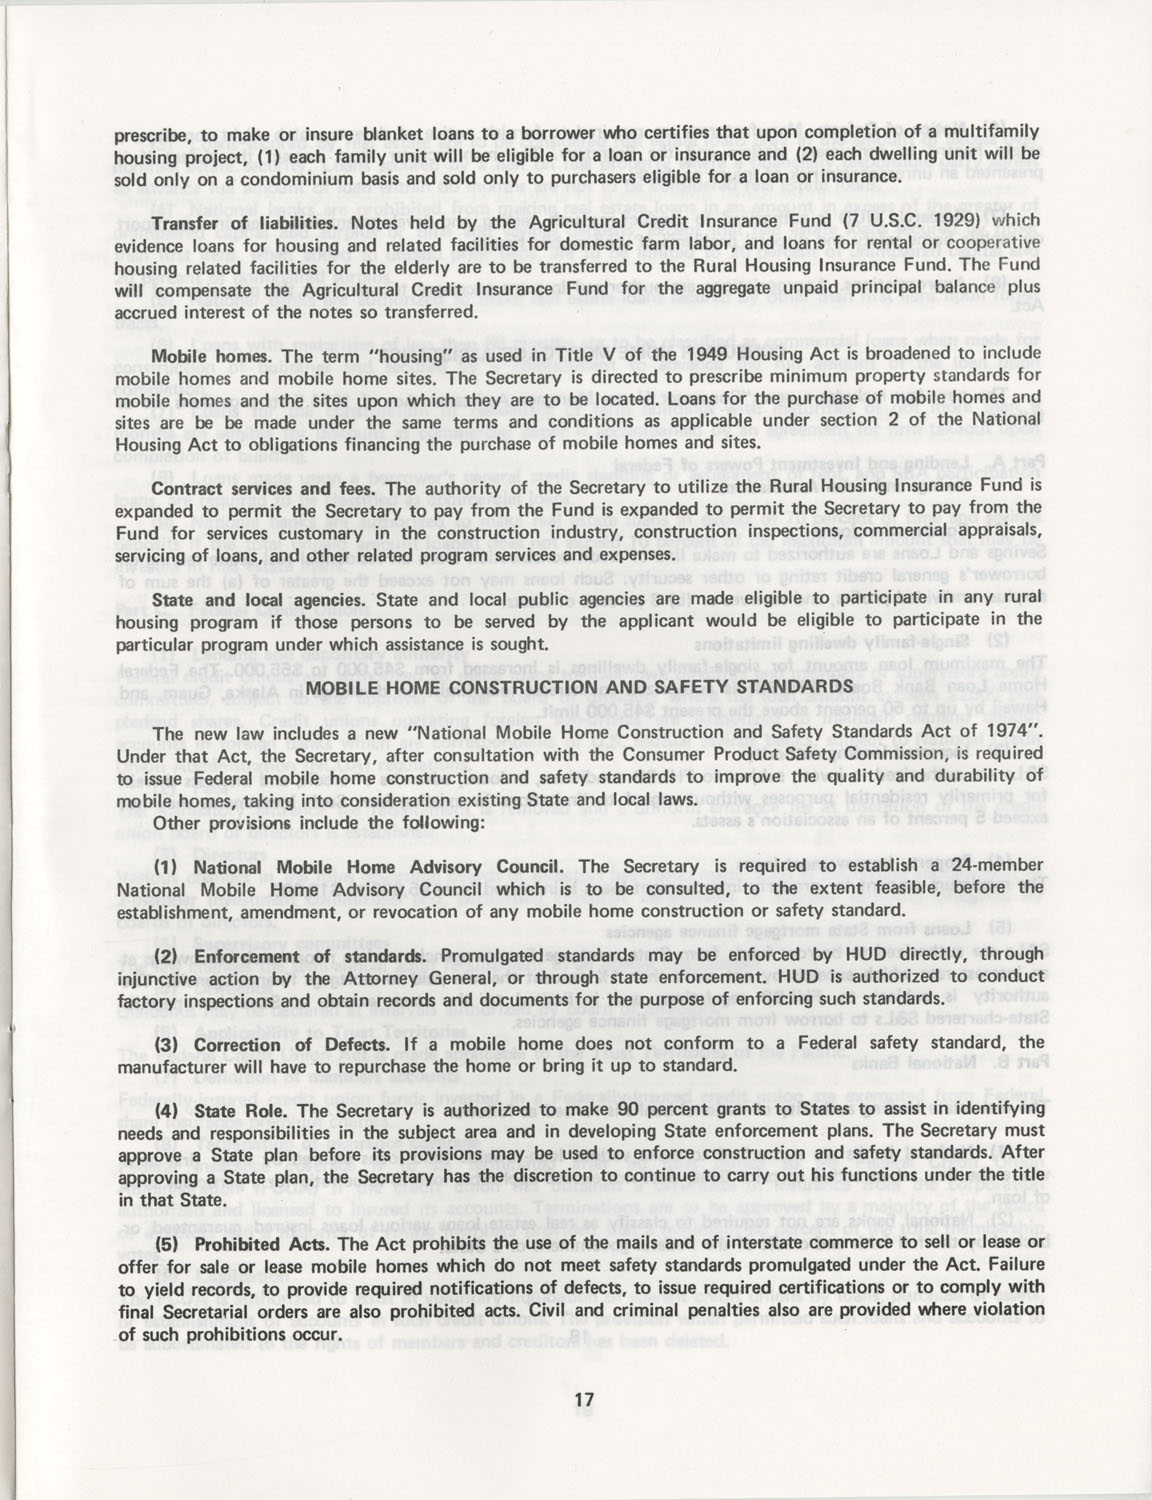 Summary of the Housing and Community Development Act of 1974, Page 17